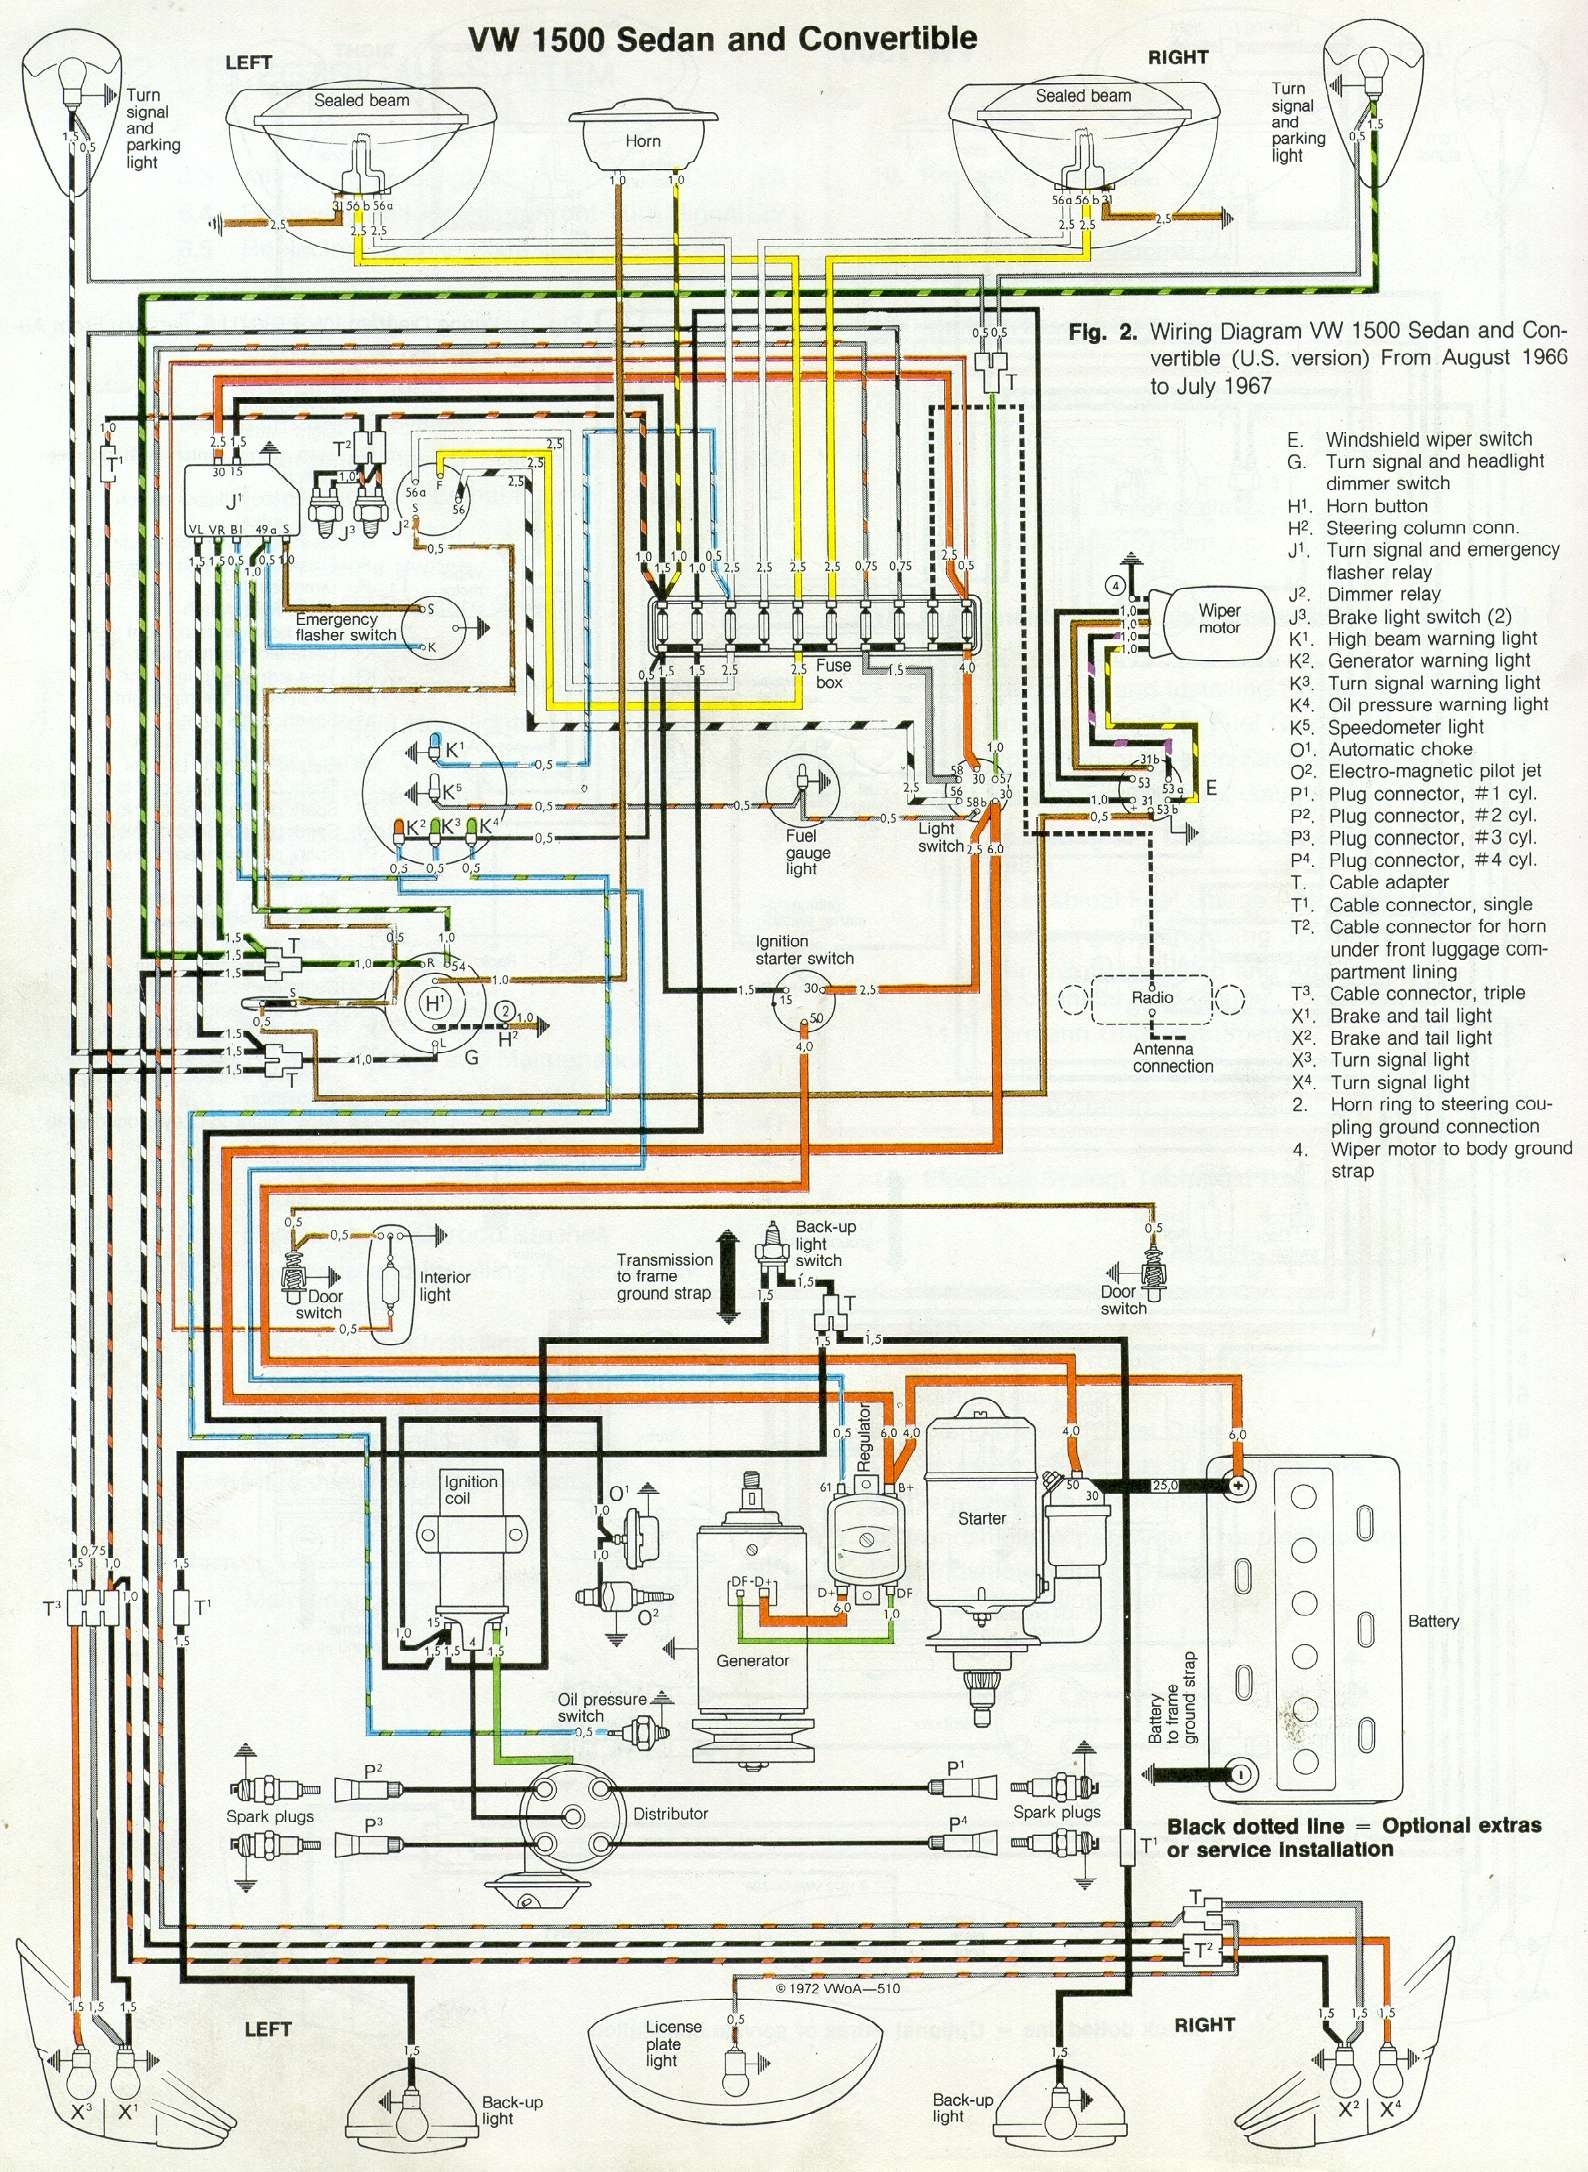 1967 vw wiring harness wiring diagram progresif rh iovegzgv sankt saturnina de 1967 vw beetle wiring harness 1967 vw beetle wiring harness